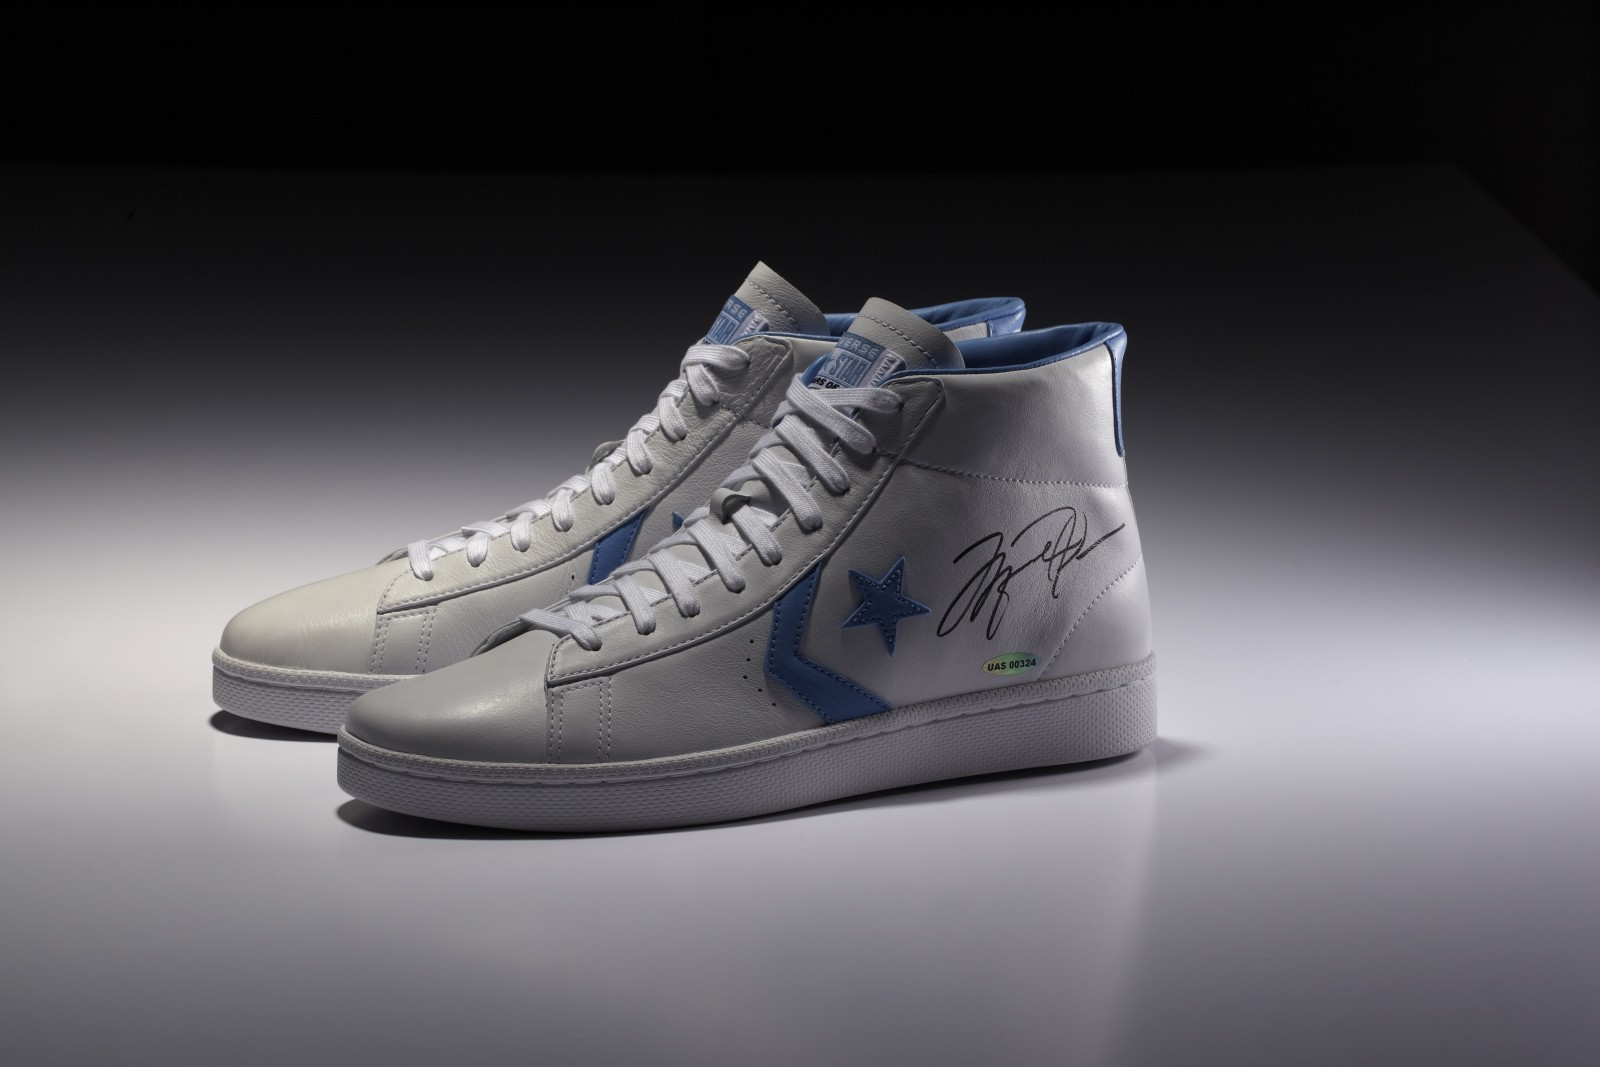 hermosa Sentido táctil Complacer  Best of 2012 - Converse   Sole Collector